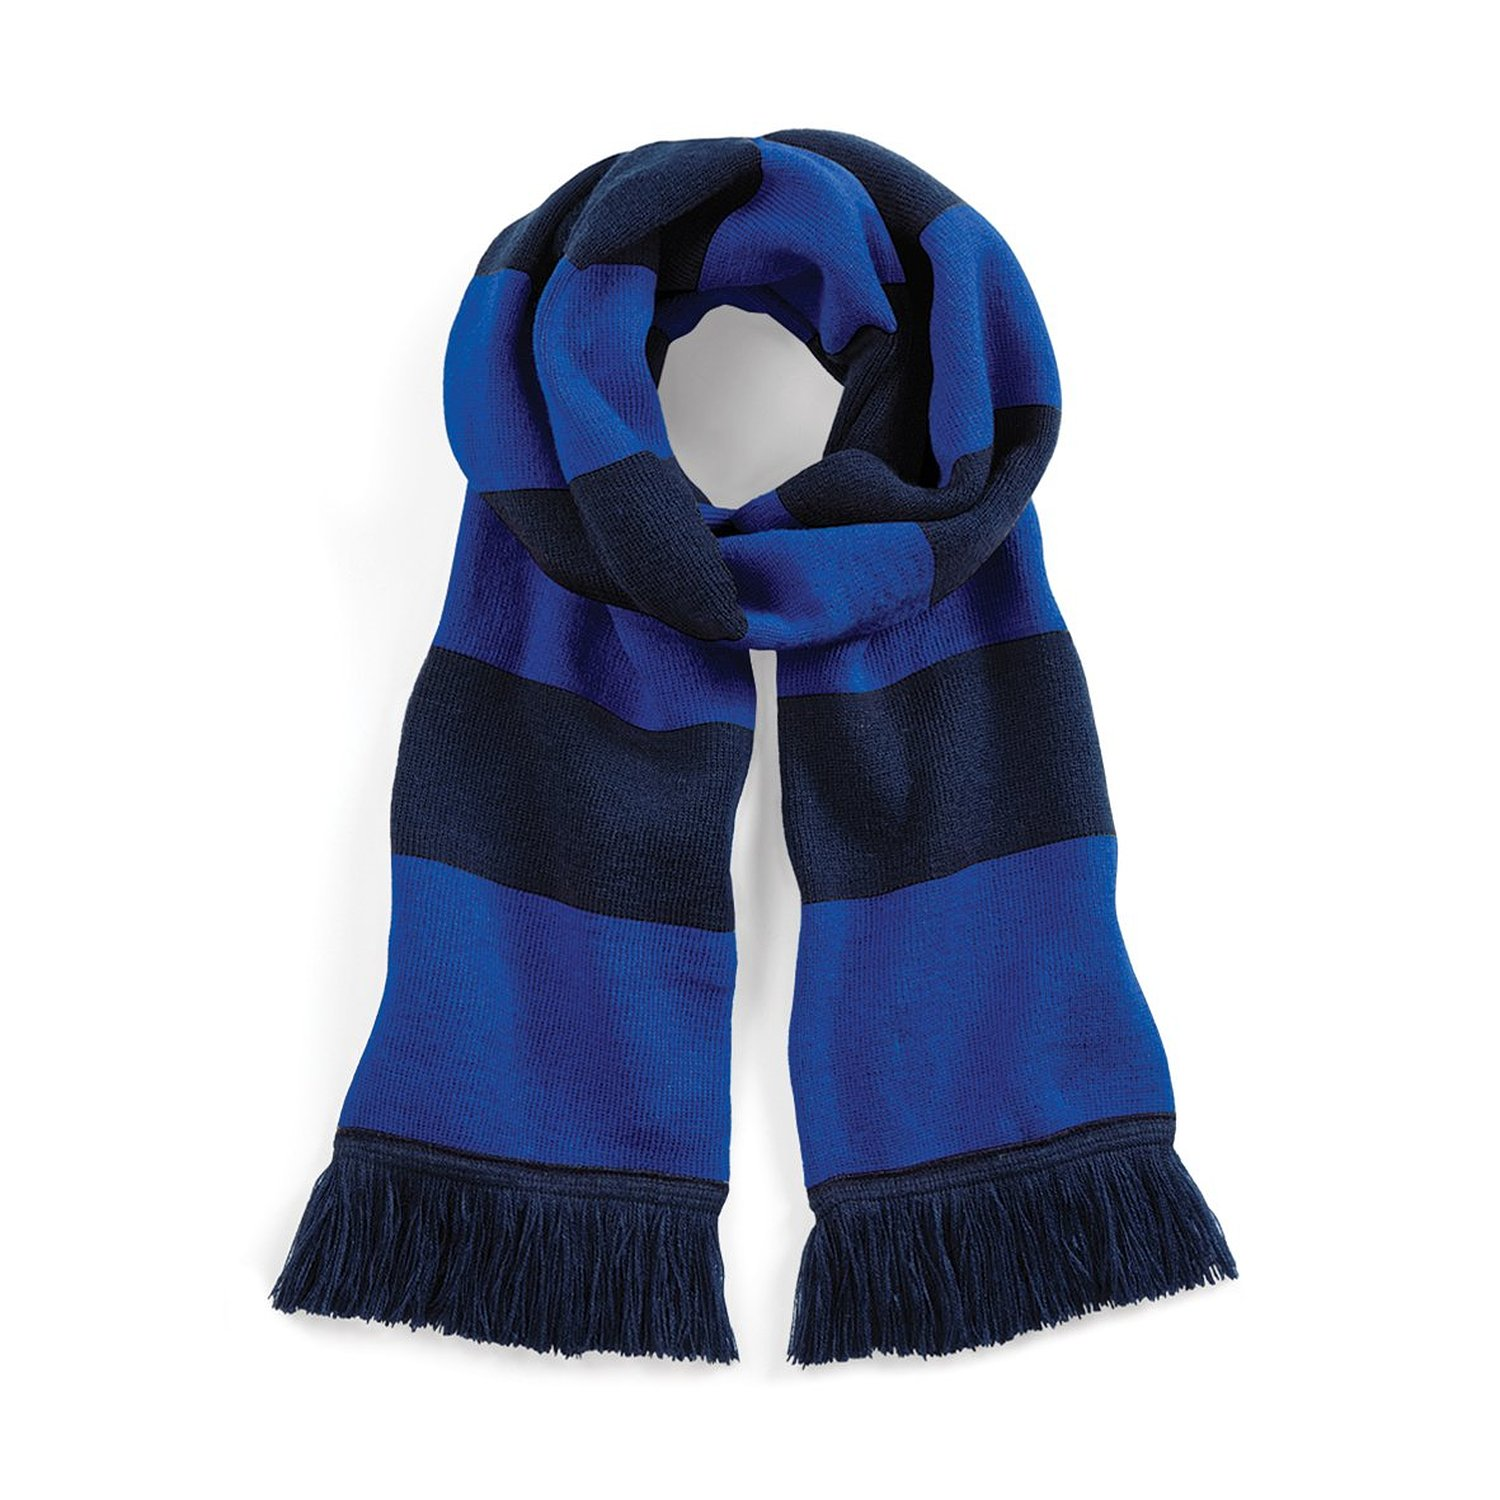 Striped Scarf Designs and Patterns World Scarf